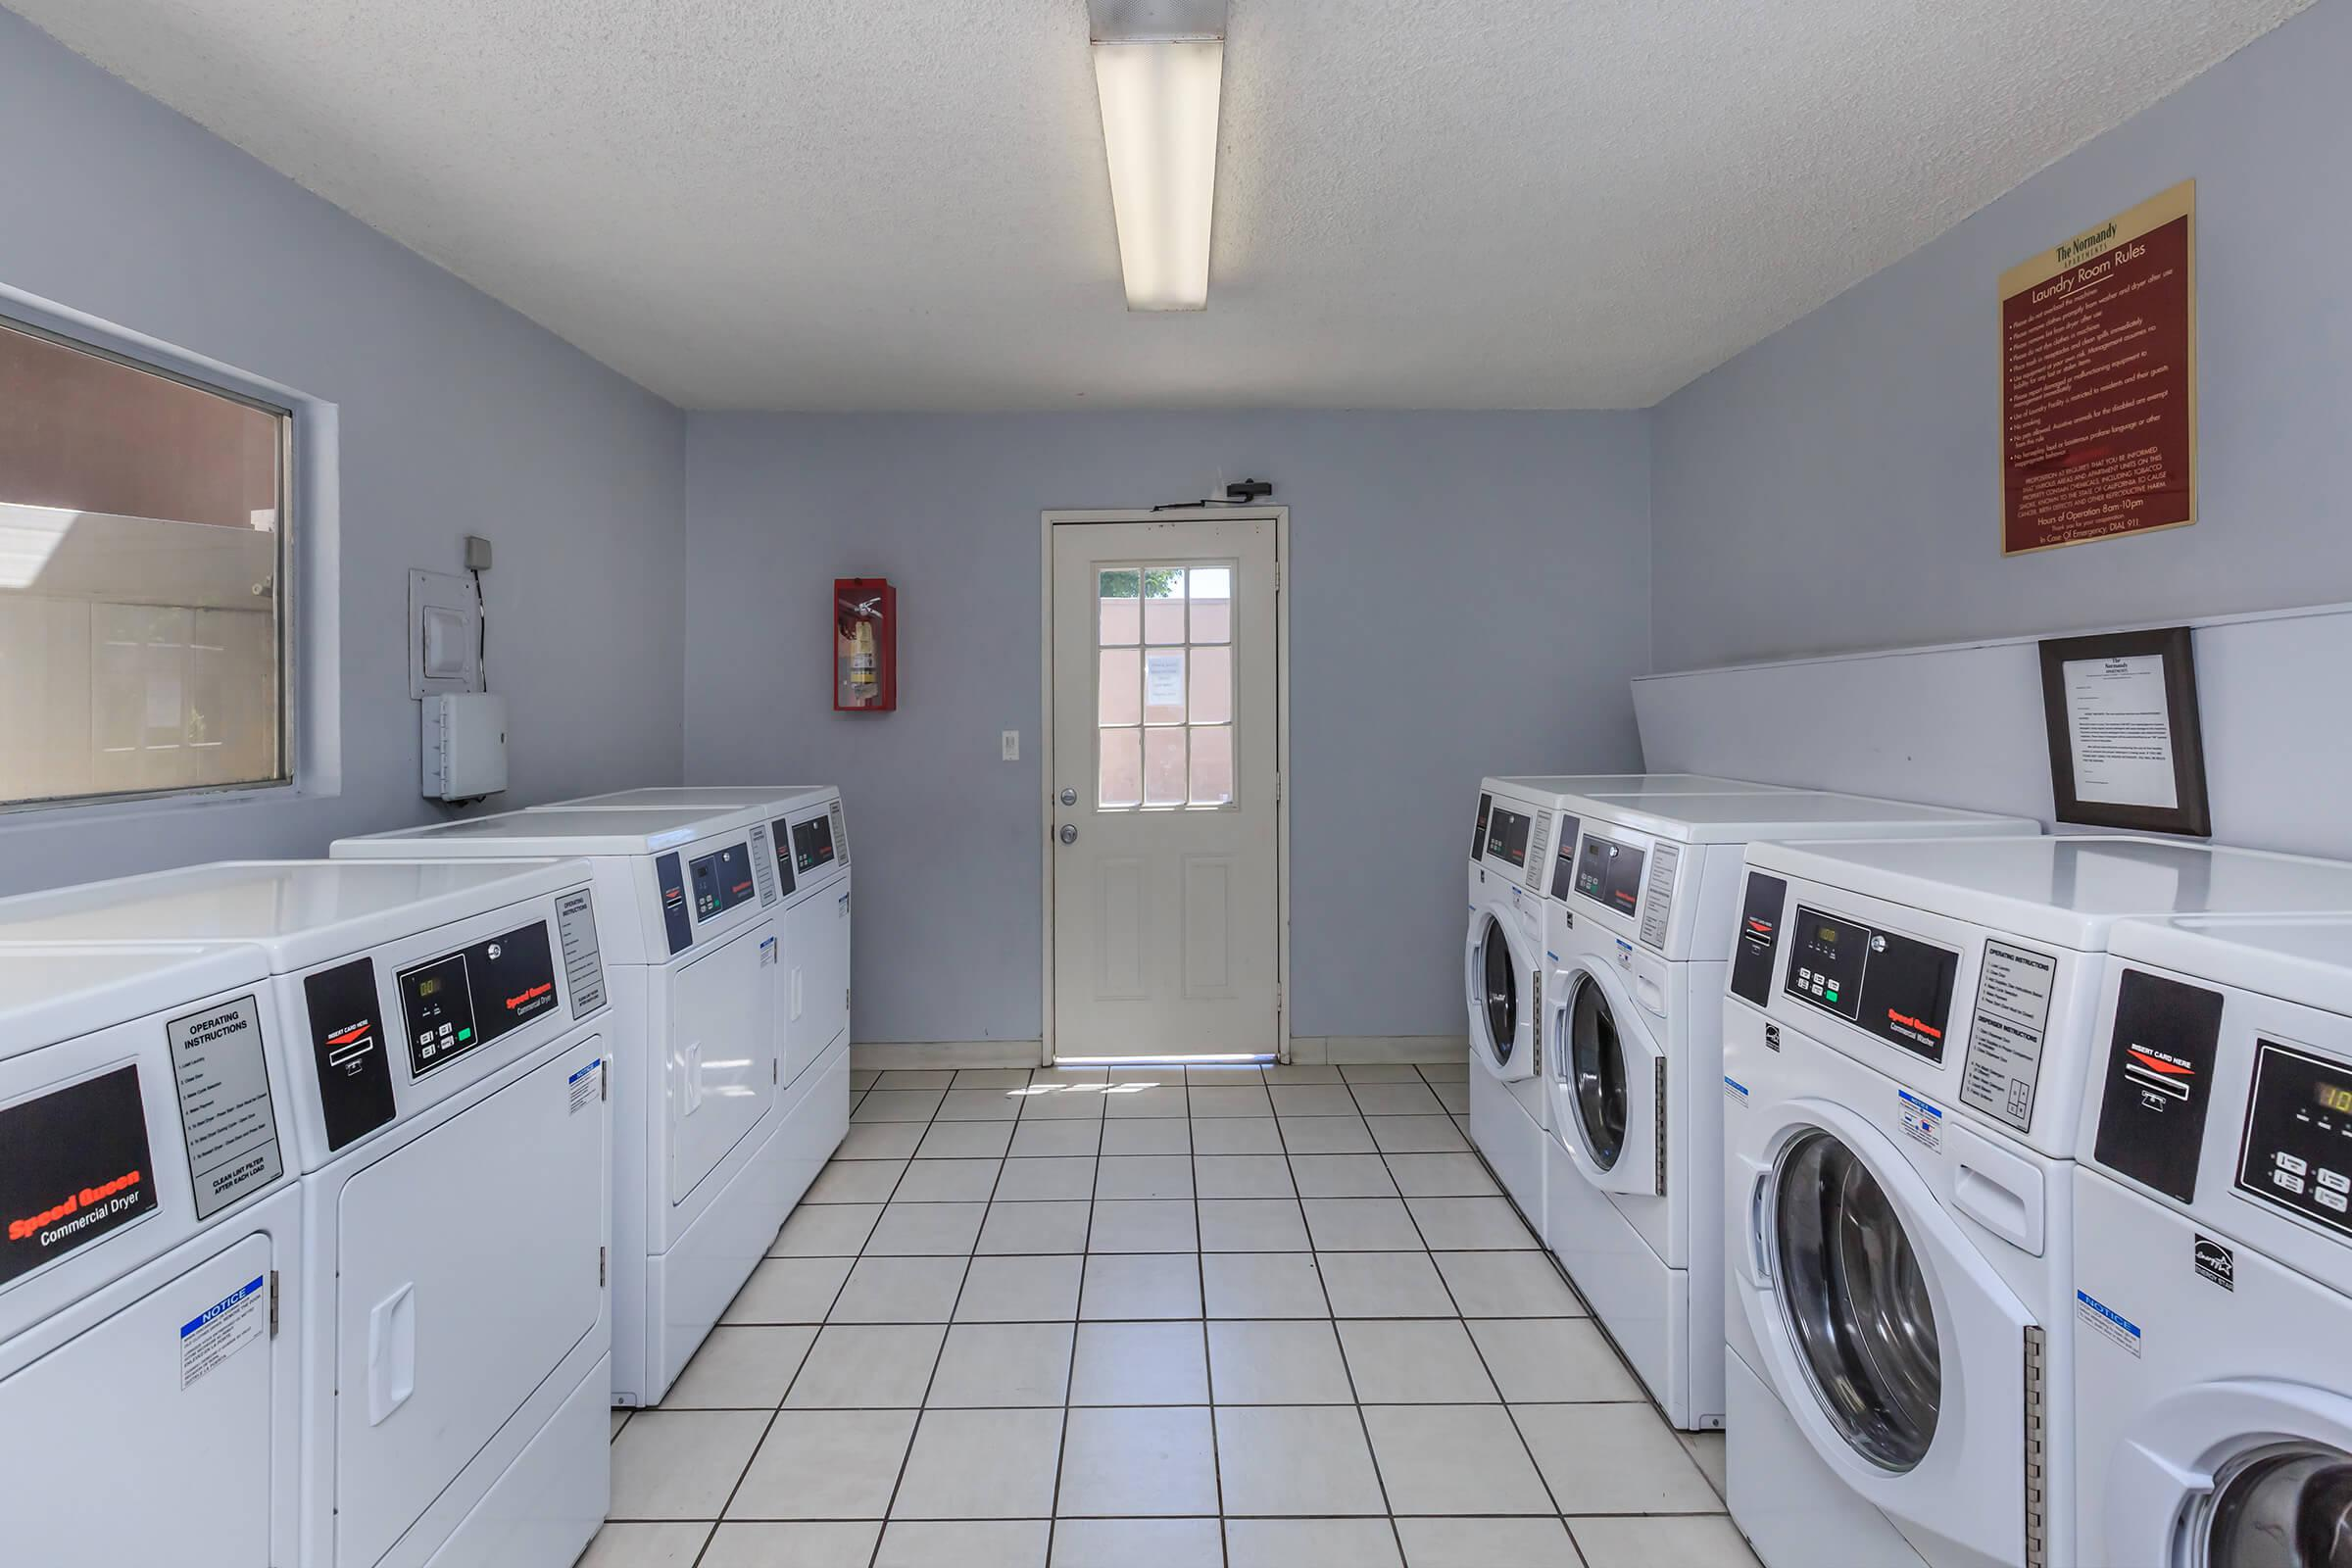 Washers and dryers in community laundry room